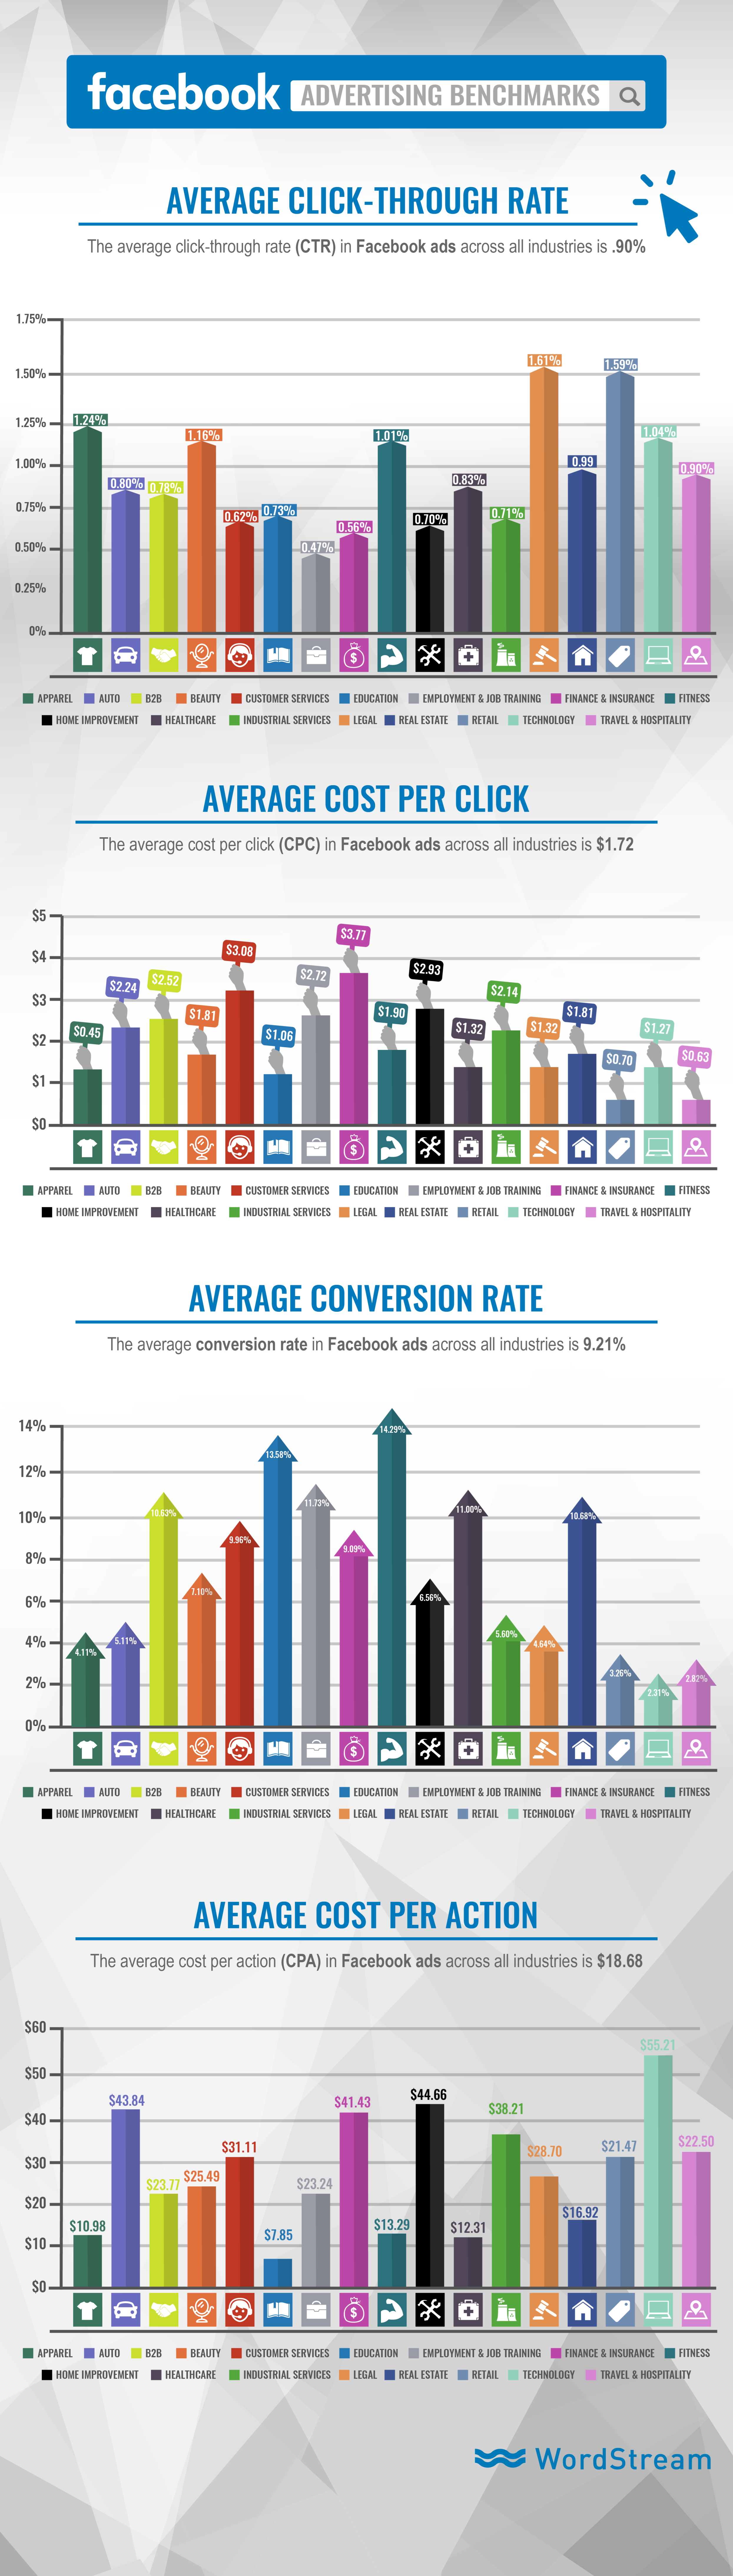 Facebook Ad Benchmarks for YOUR Industry - facebook ad performance benchmarks